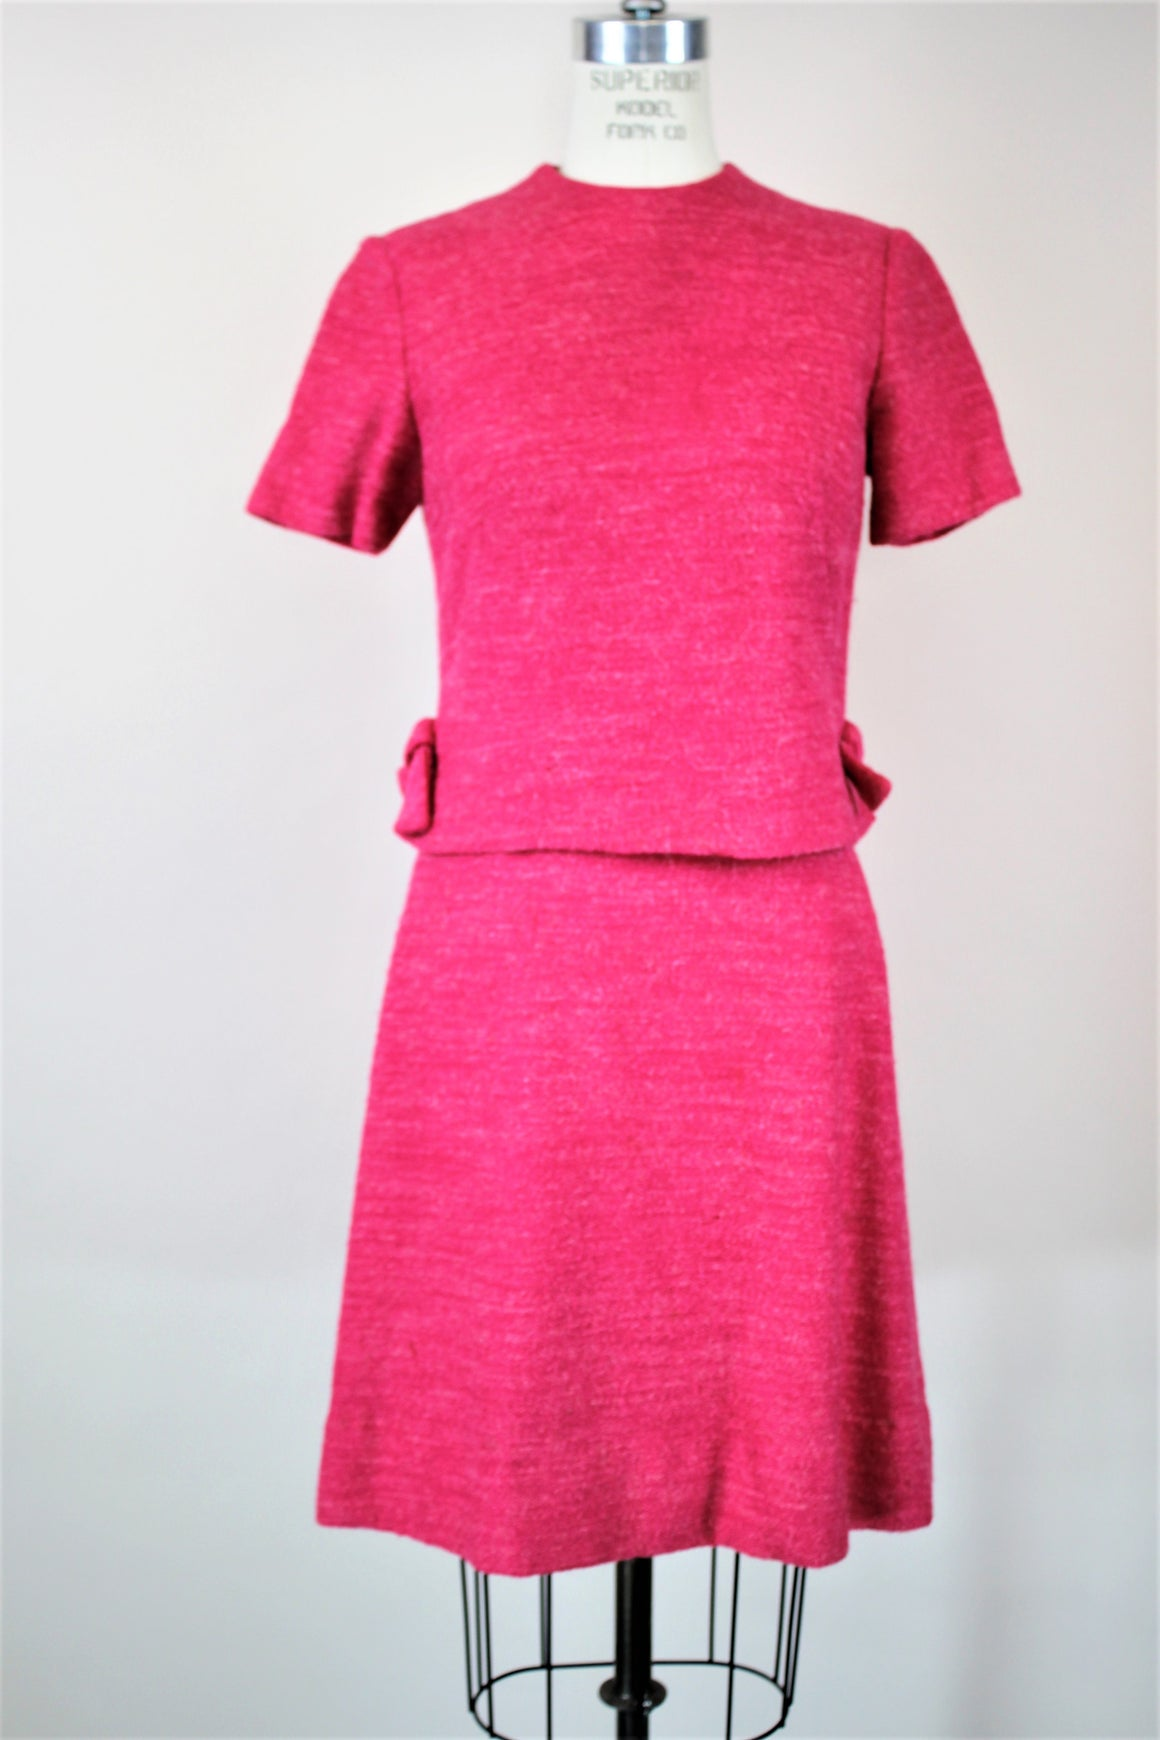 Vintage 1960s Pink Wool Tweed Dress With Top